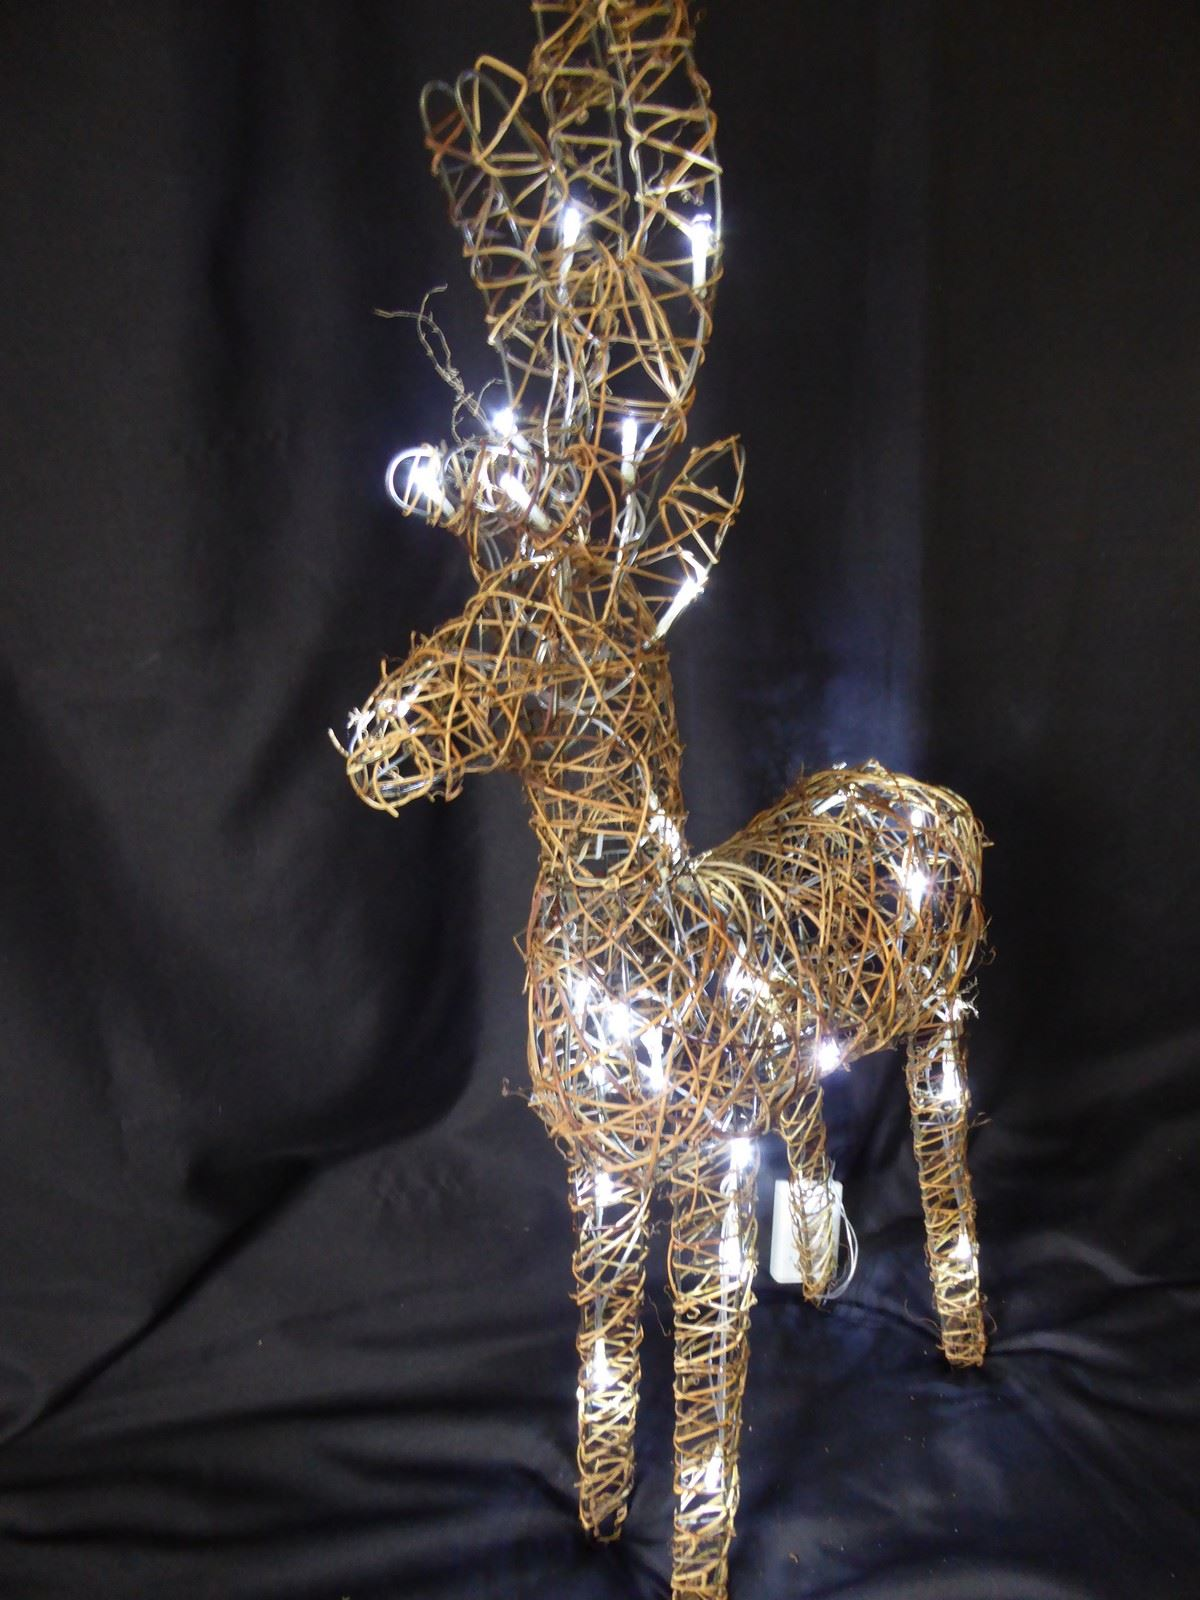 Large-Pre-Lit-Christmas-Reindeer-Decoration-Rustic-Rattan-LED-Lights-Indoor thumbnail 67